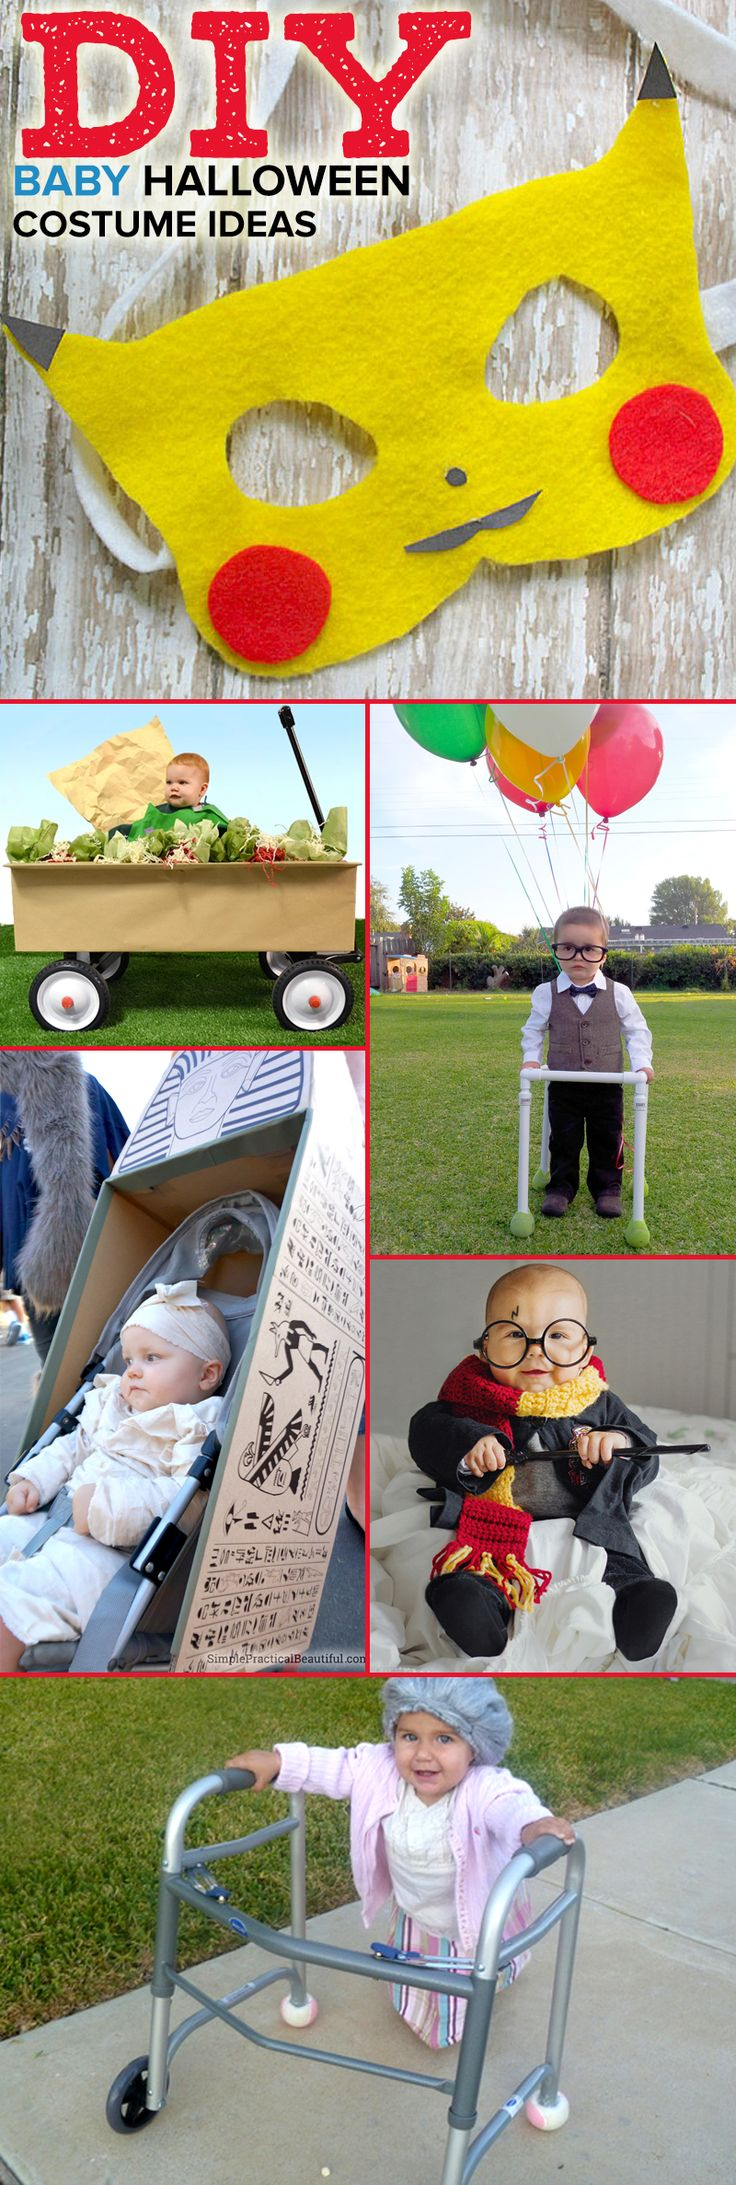 336 best diy halloween costumes images on pinterest family holiday create a funny and clever diy halloween costume for your baby boy or girl with one solutioingenieria Image collections